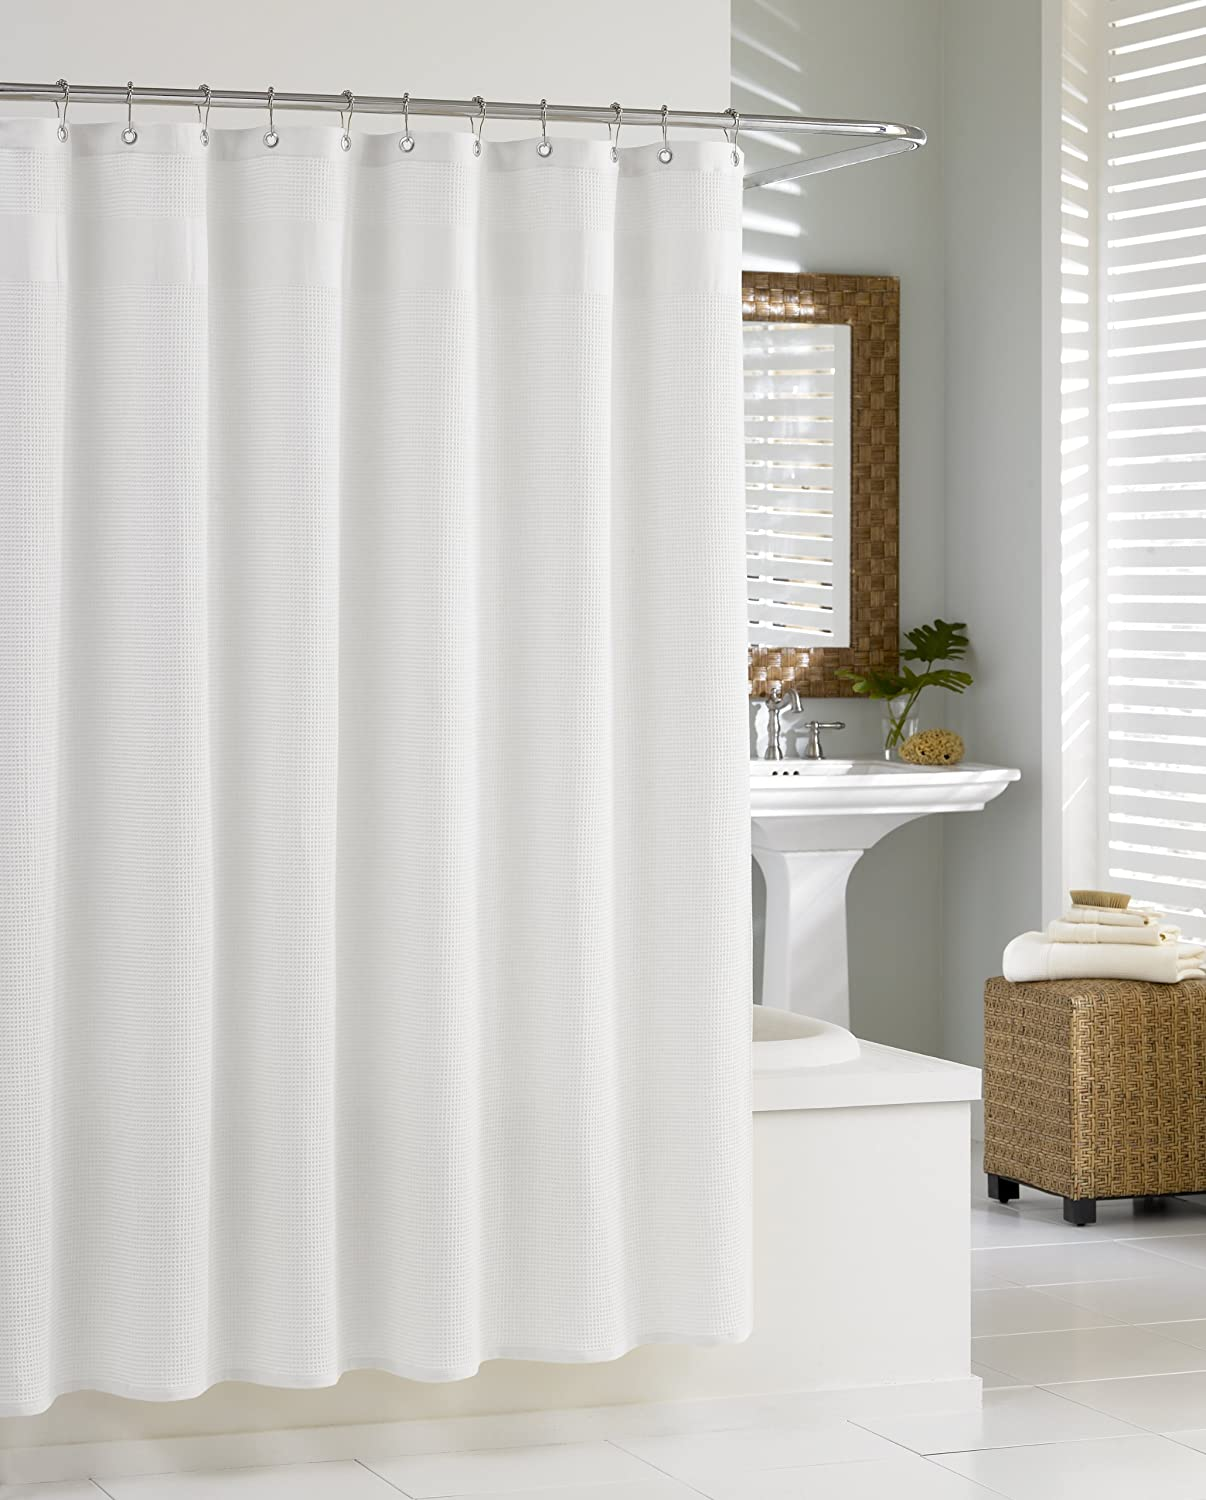 Kassatex SCS-115-WAF-W Cheap Popular product super special price Waffle White Curtain Shower